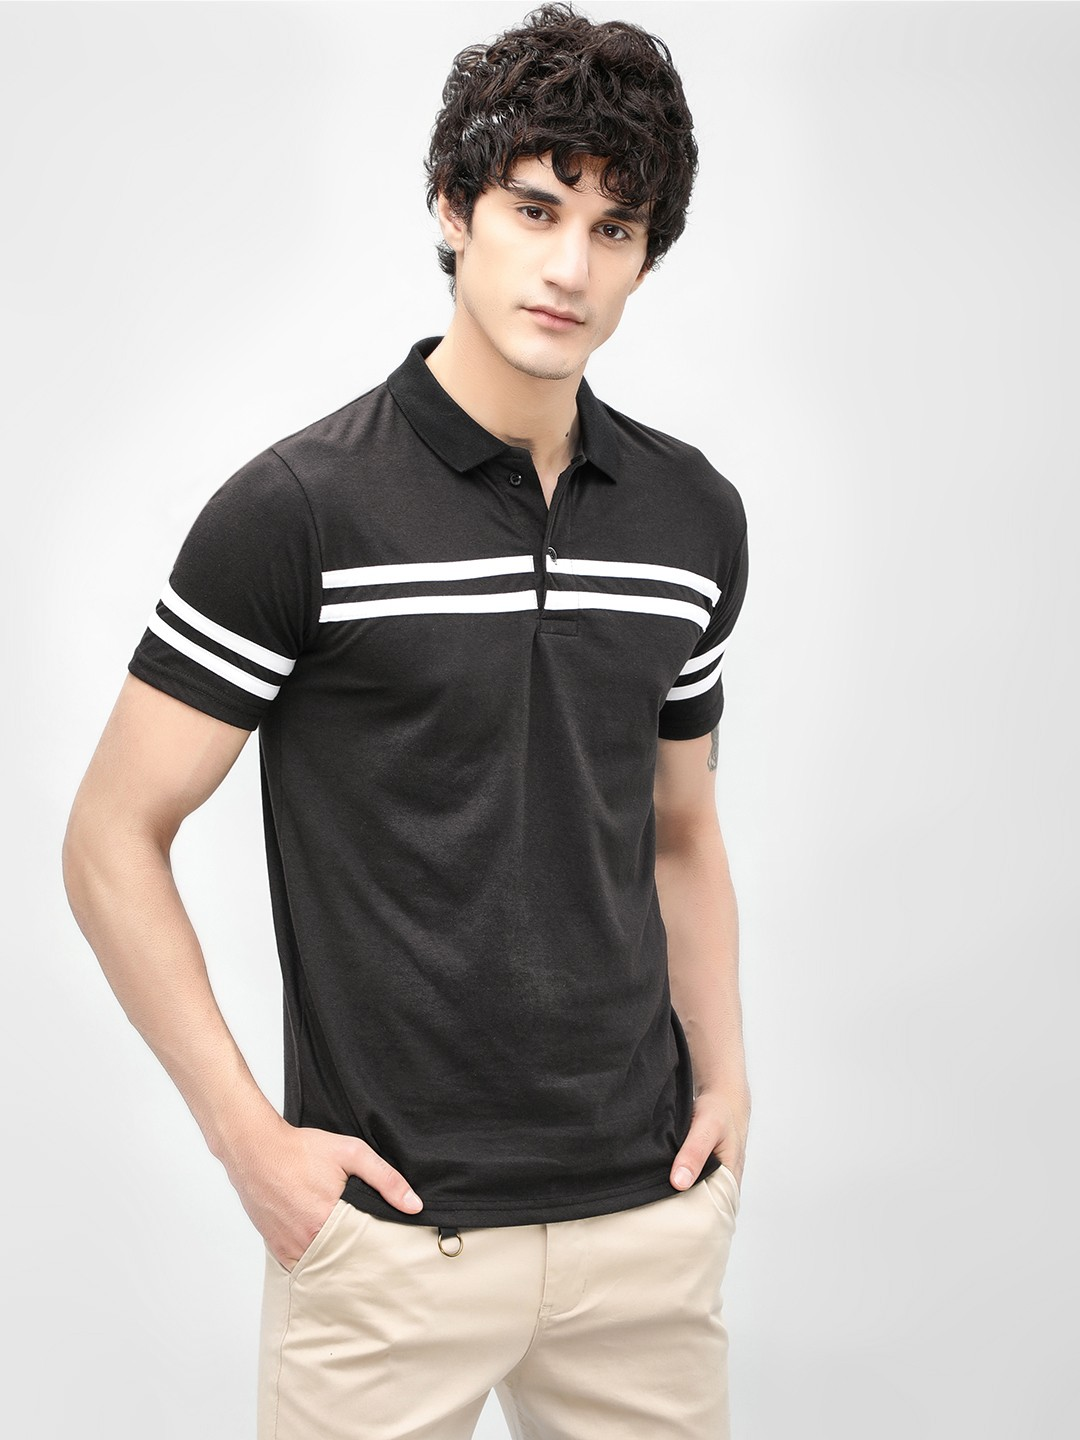 Blotch Black Panel Stripes Polo Shirt 1